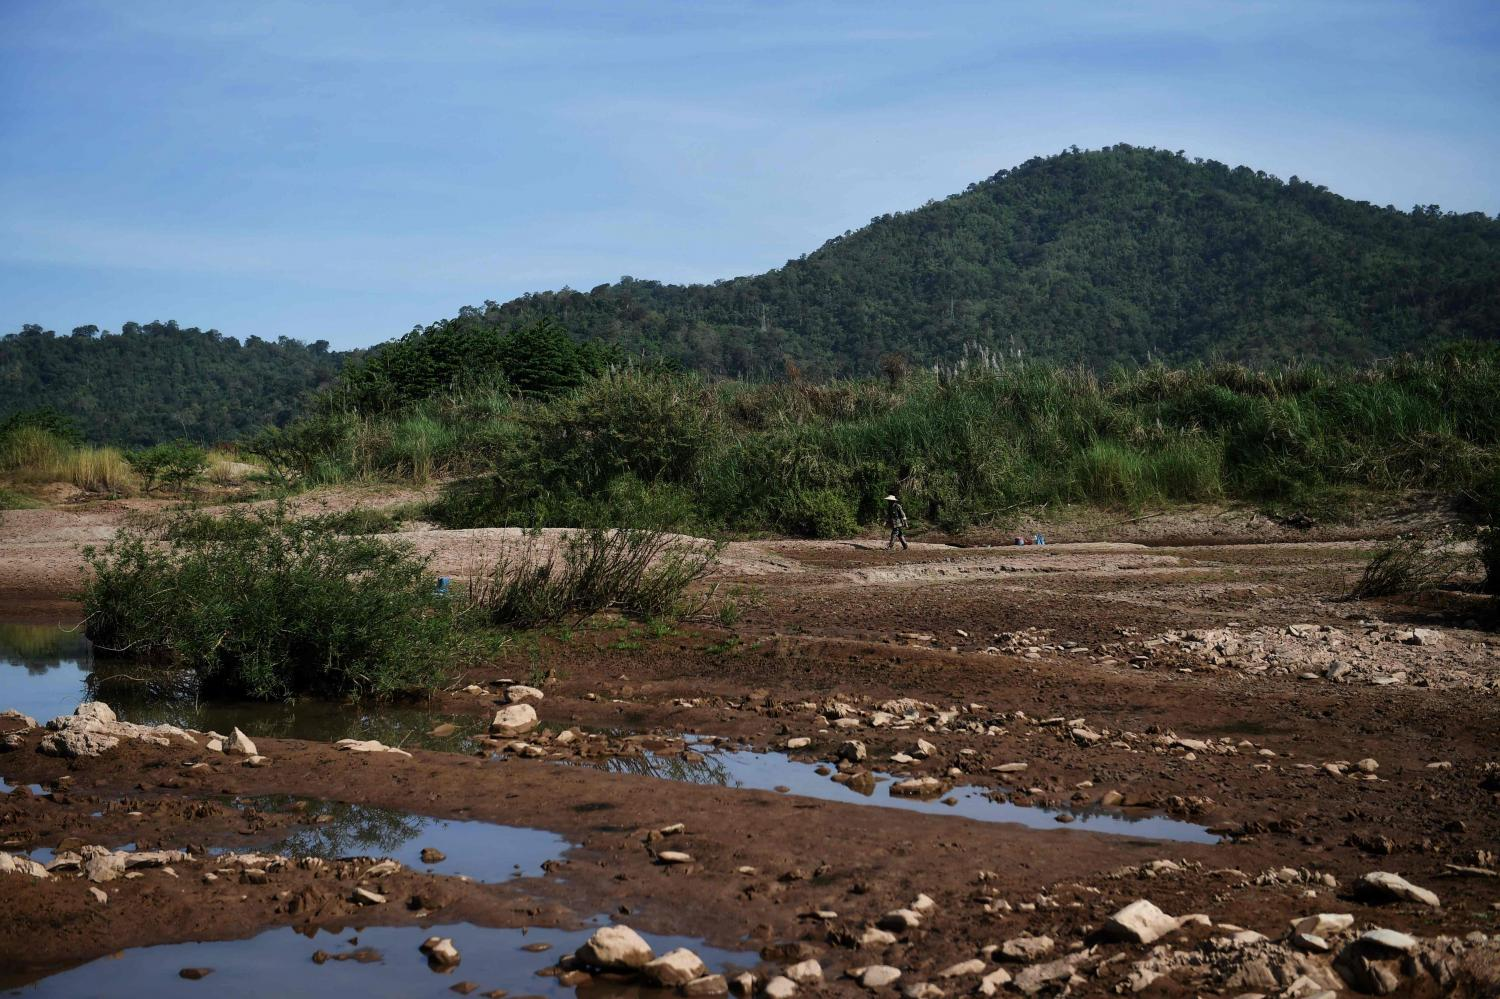 A dried riverbank area of the Mekong River in Pak Chom district in the northeastern province of Loei. China was pressed in June last year to share year-round data on water levels.AFP